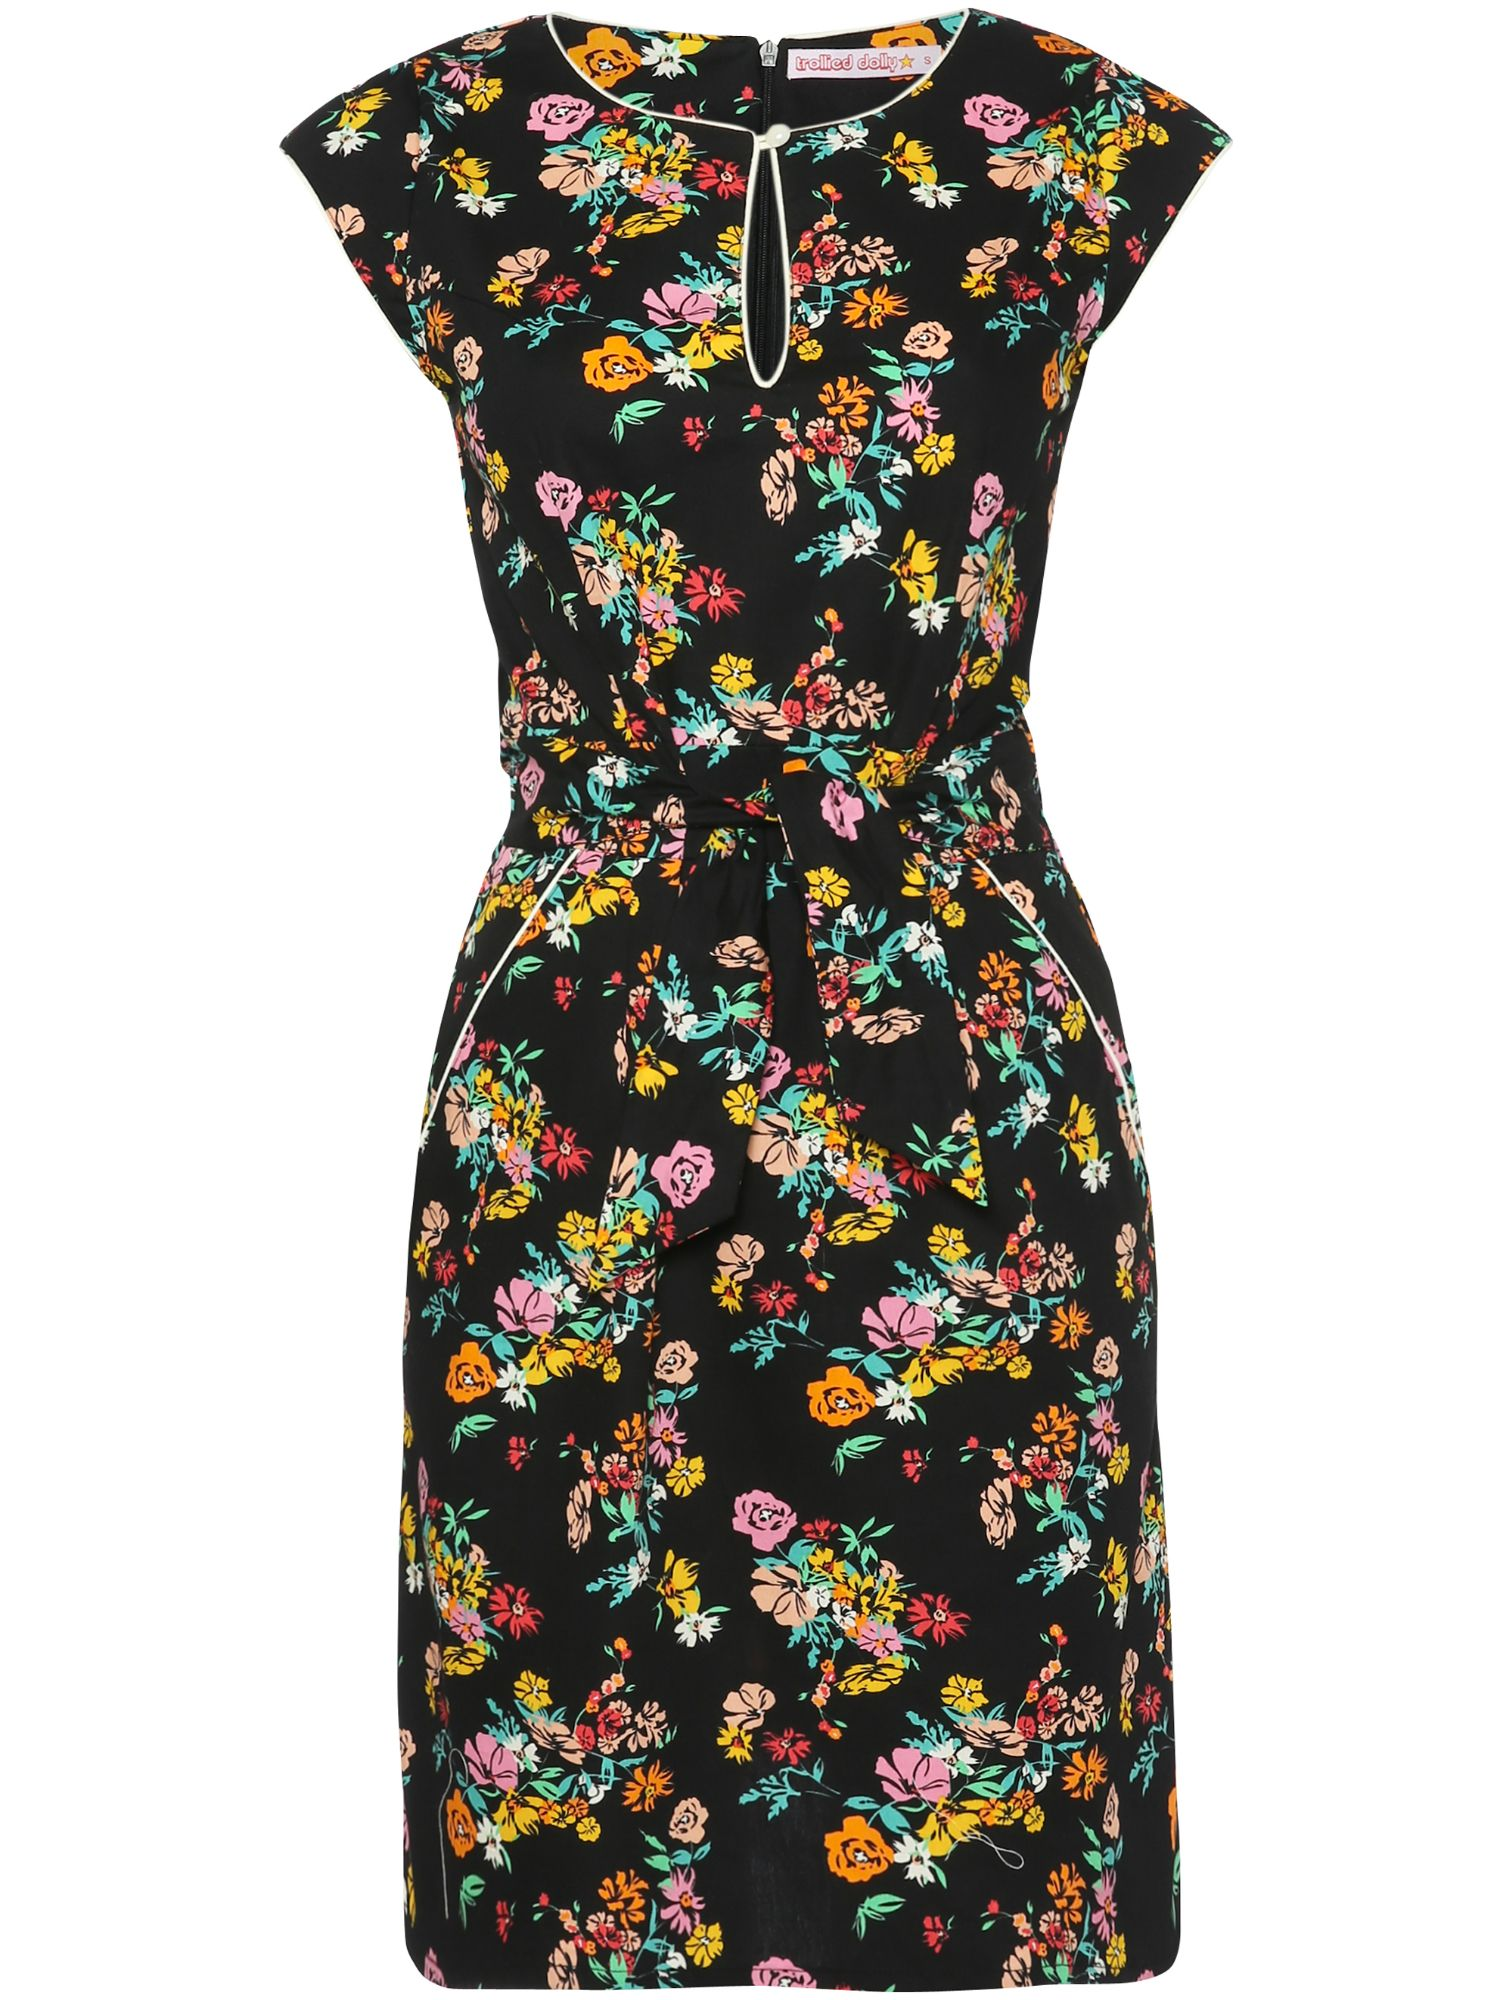 Trollied Dolly Notch Neck Dress $33.00 AT vintagedancer.com